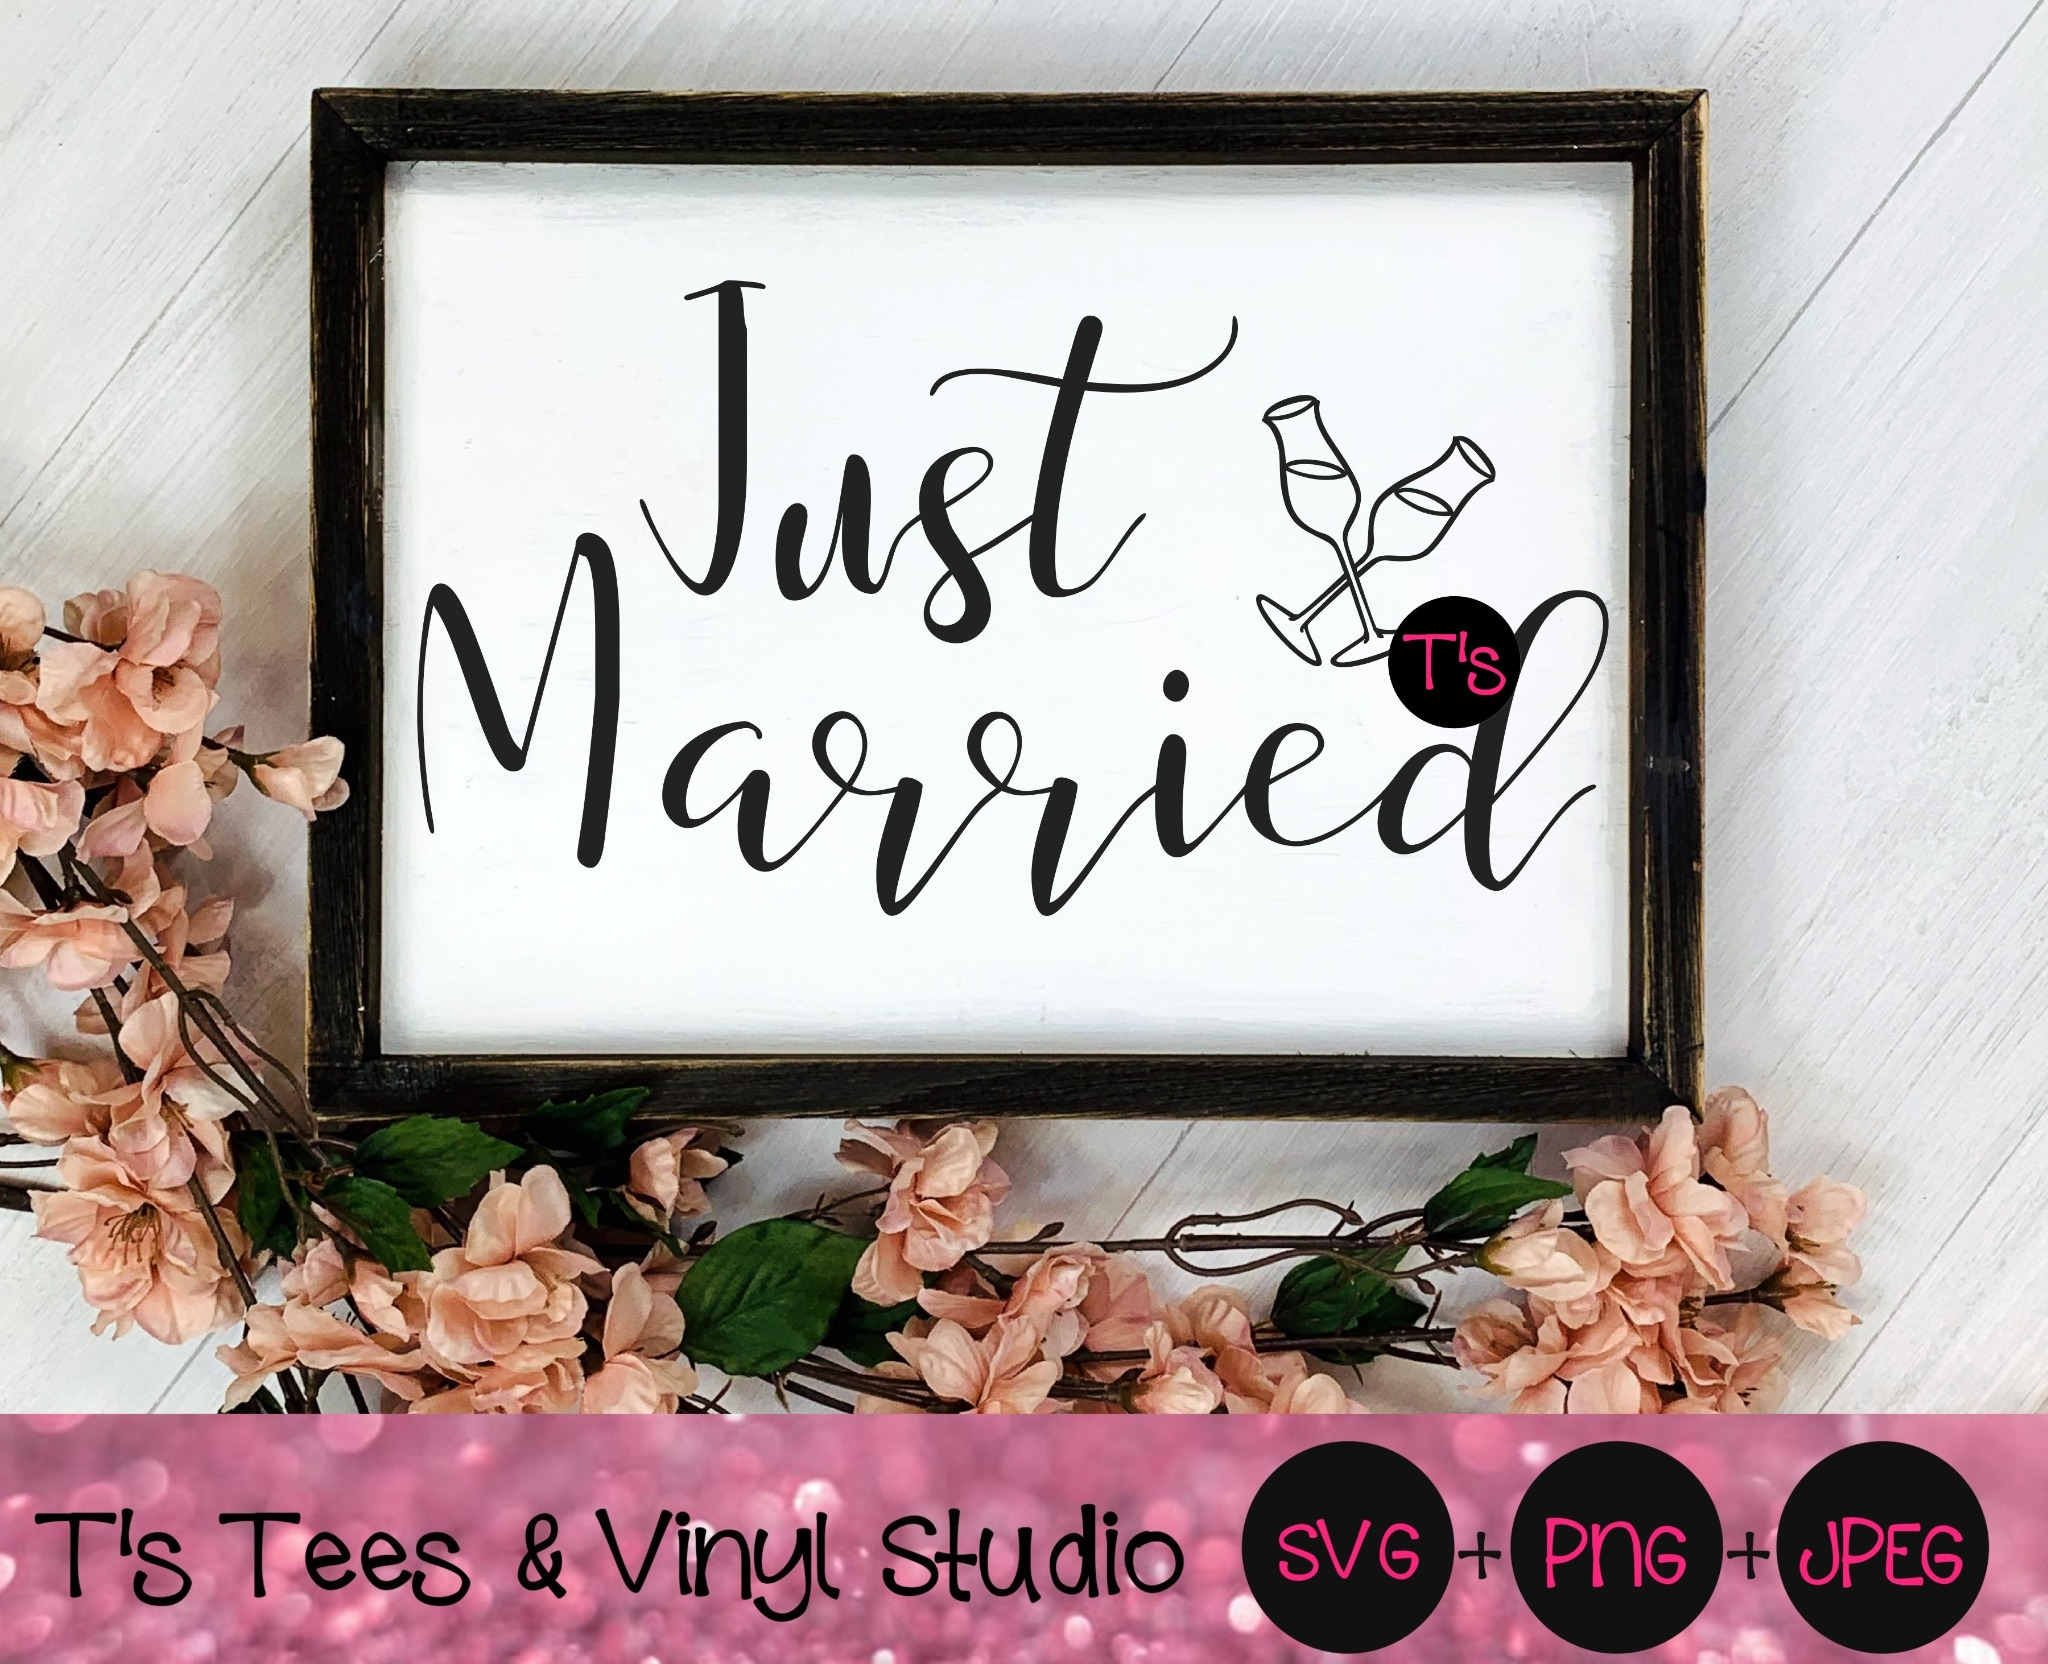 Just Married Svg, Married Svg, Marriage Svg, Mr and Mrs Svg, Bride and Groom Svg, Husband and Wife